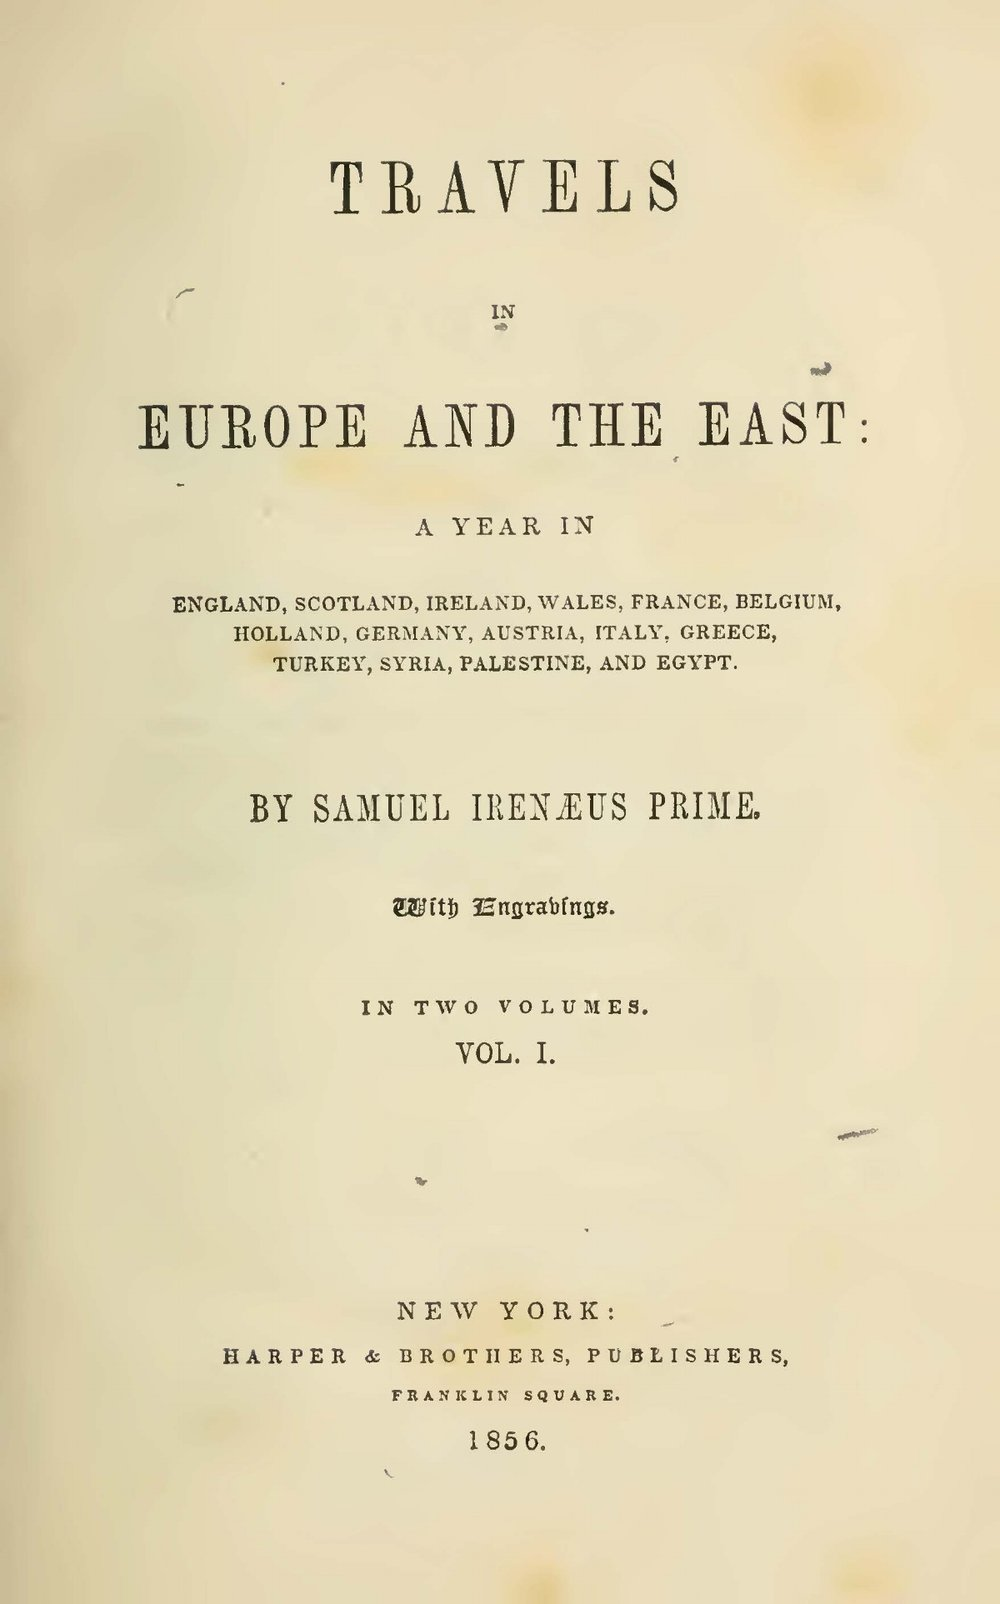 Prime, Samuel Irenaeus, Travels in Europe and the East, Vol. 1 Title Page.jpg